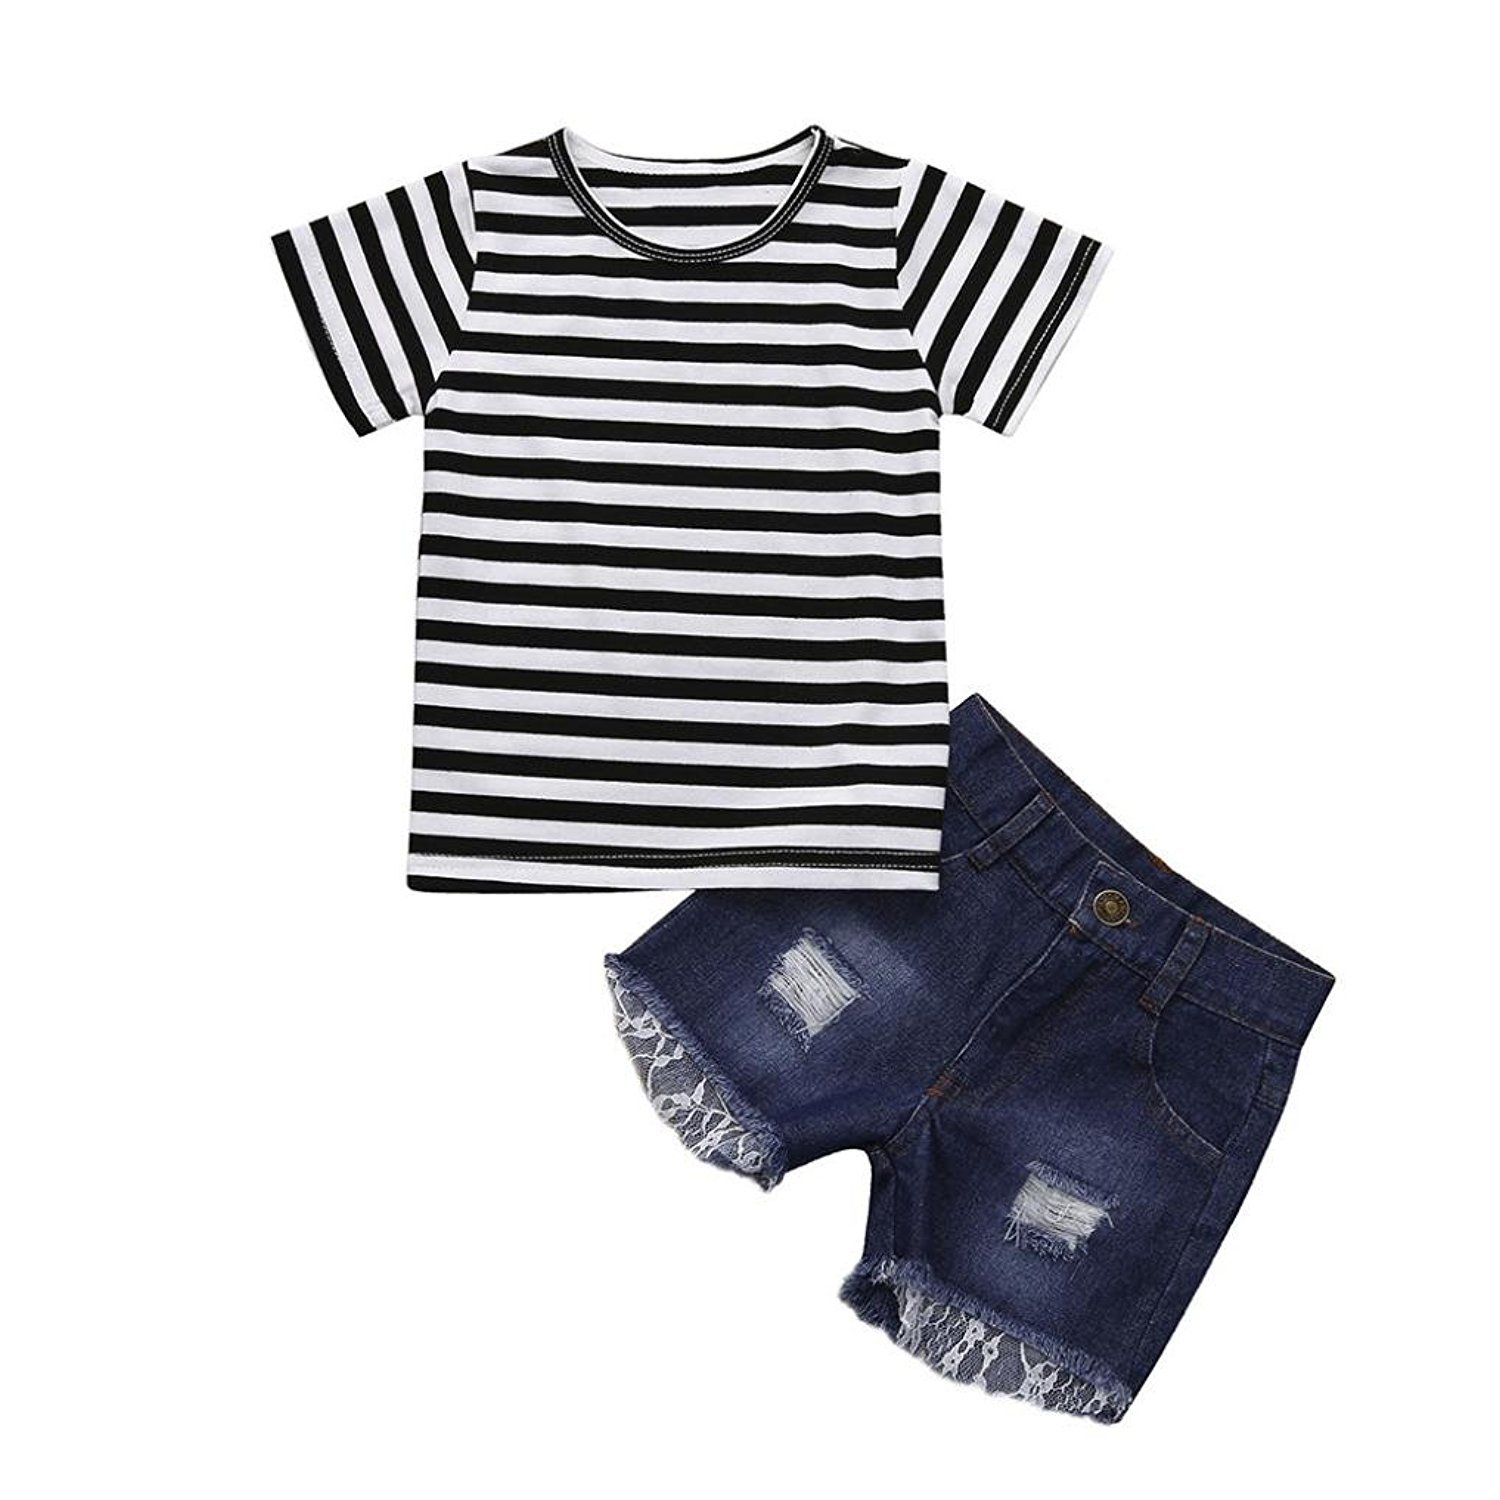 Webla Toddler Kids Baby Girls Striped Tops+Denim Shorts 2Pcs Outfits Clothes Set Ages 1-5 Years 2-3T